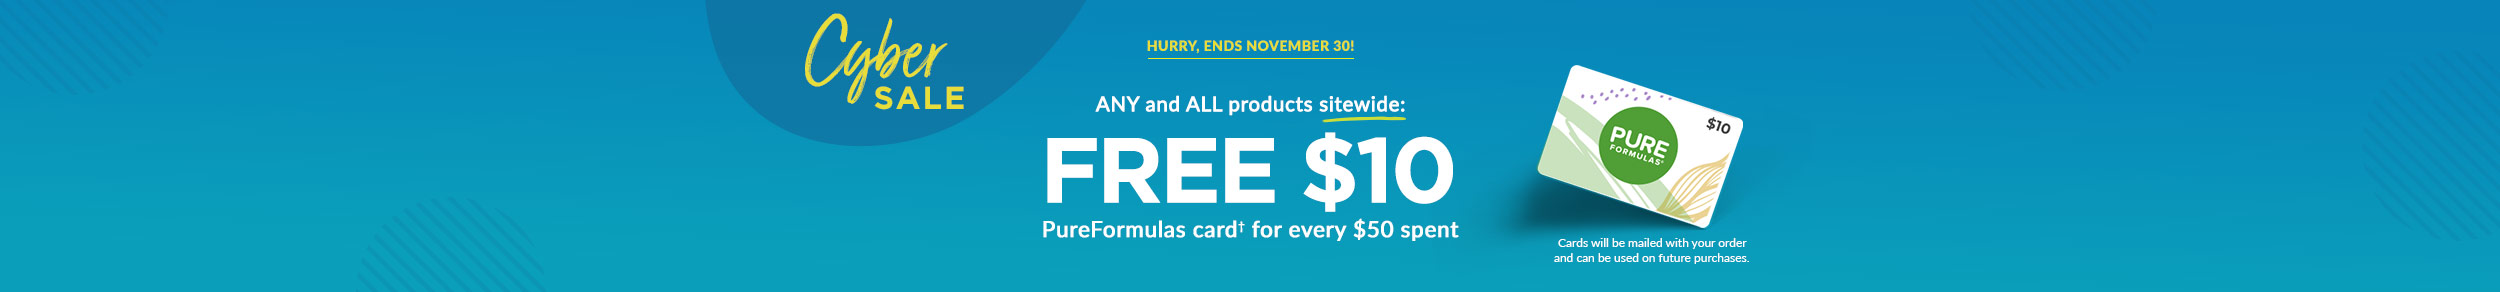 CYBER SALE - HURRY, ENDS NOVEMBER 30! ANY and ALL products sitewide: FREE $10 PureFormulas card for every $50 spent! Cards will be mailed with your order.